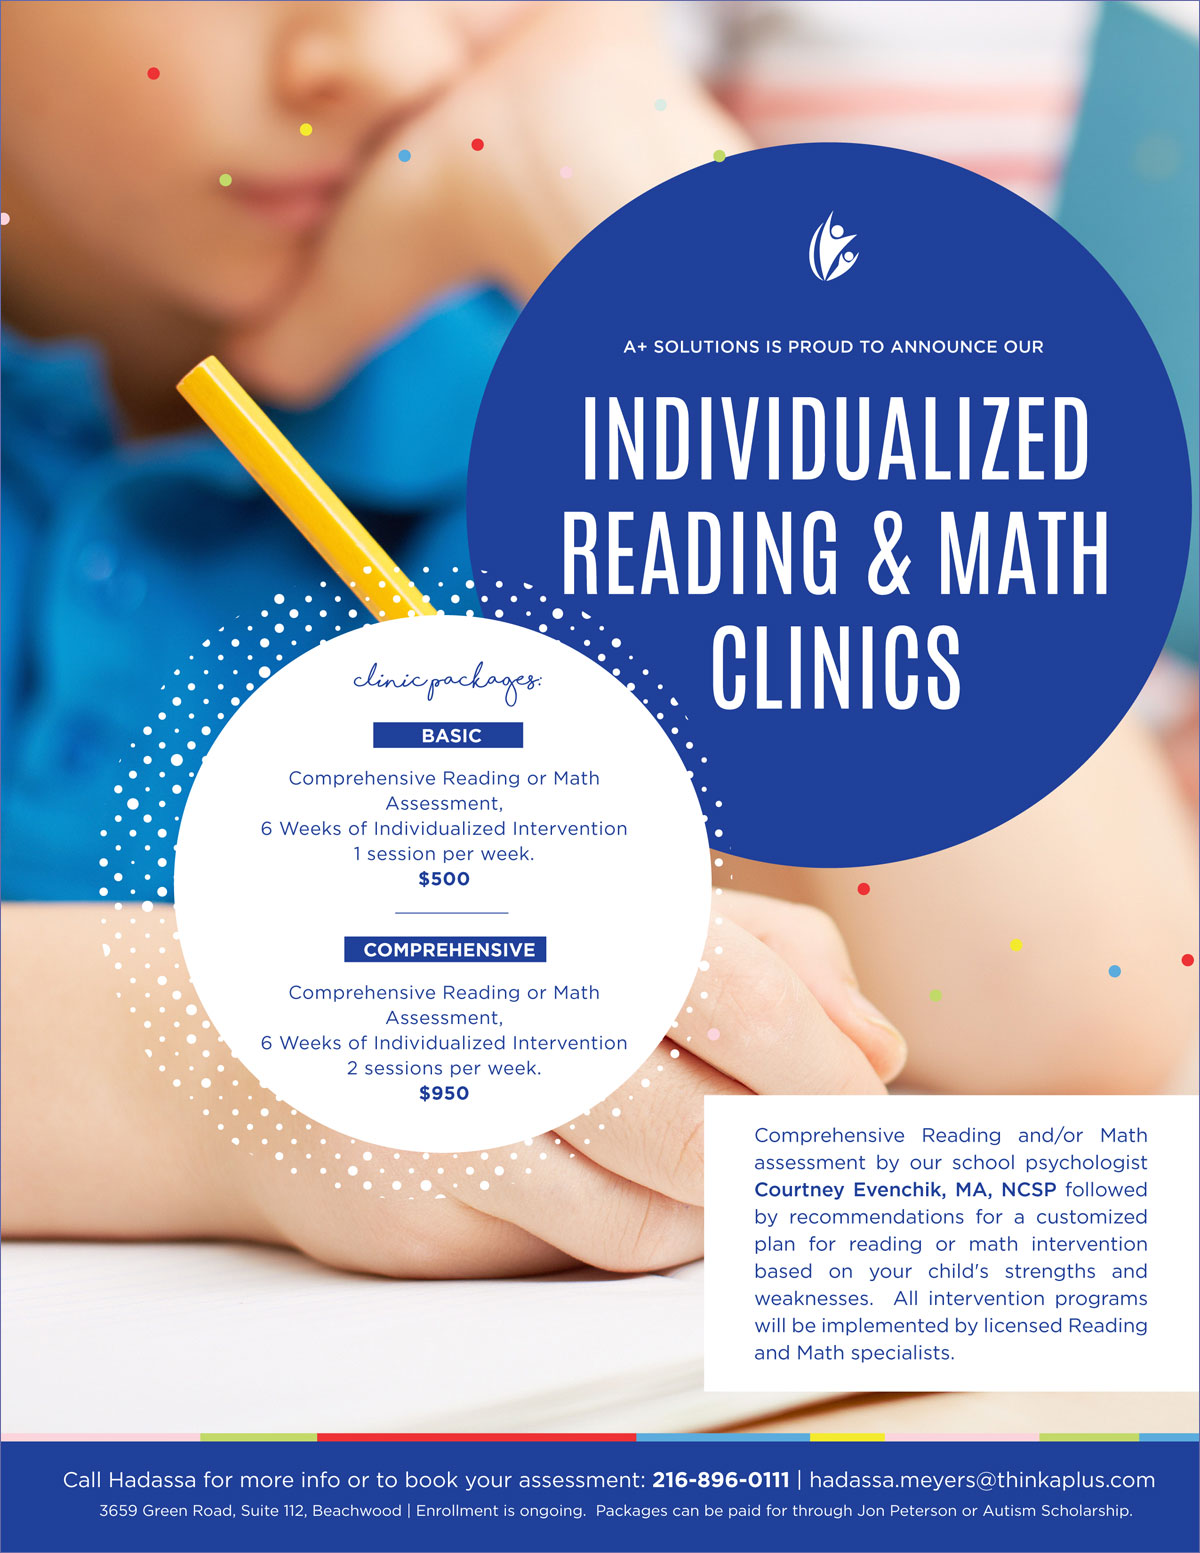 Indivuidualized Reading & Math Clinics Flyer